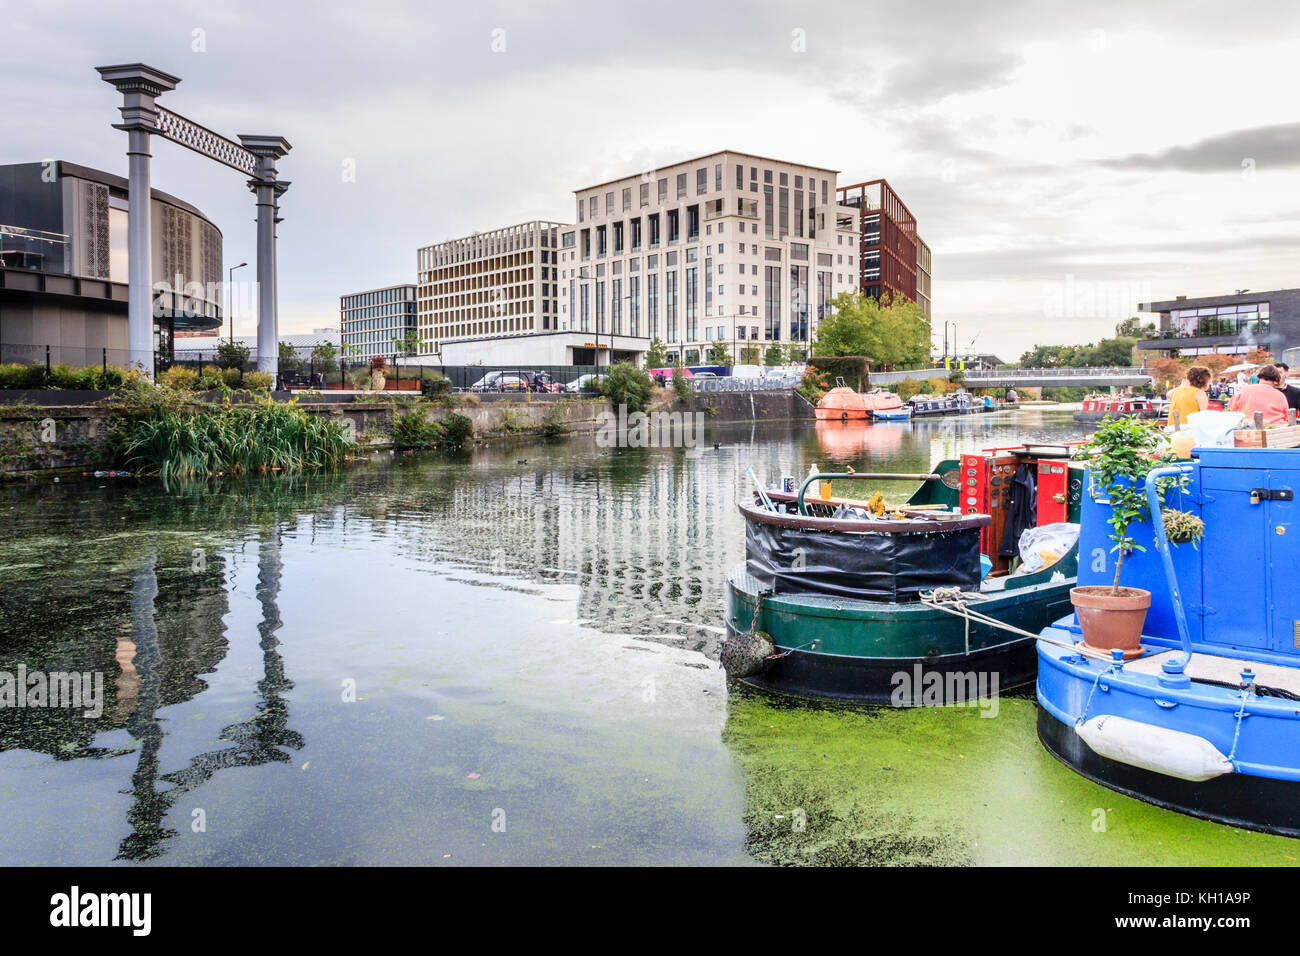 Evening reflections on Regent's Canal at King's Cross, London, UK, the Filling Station restaurant on the - Stock Image